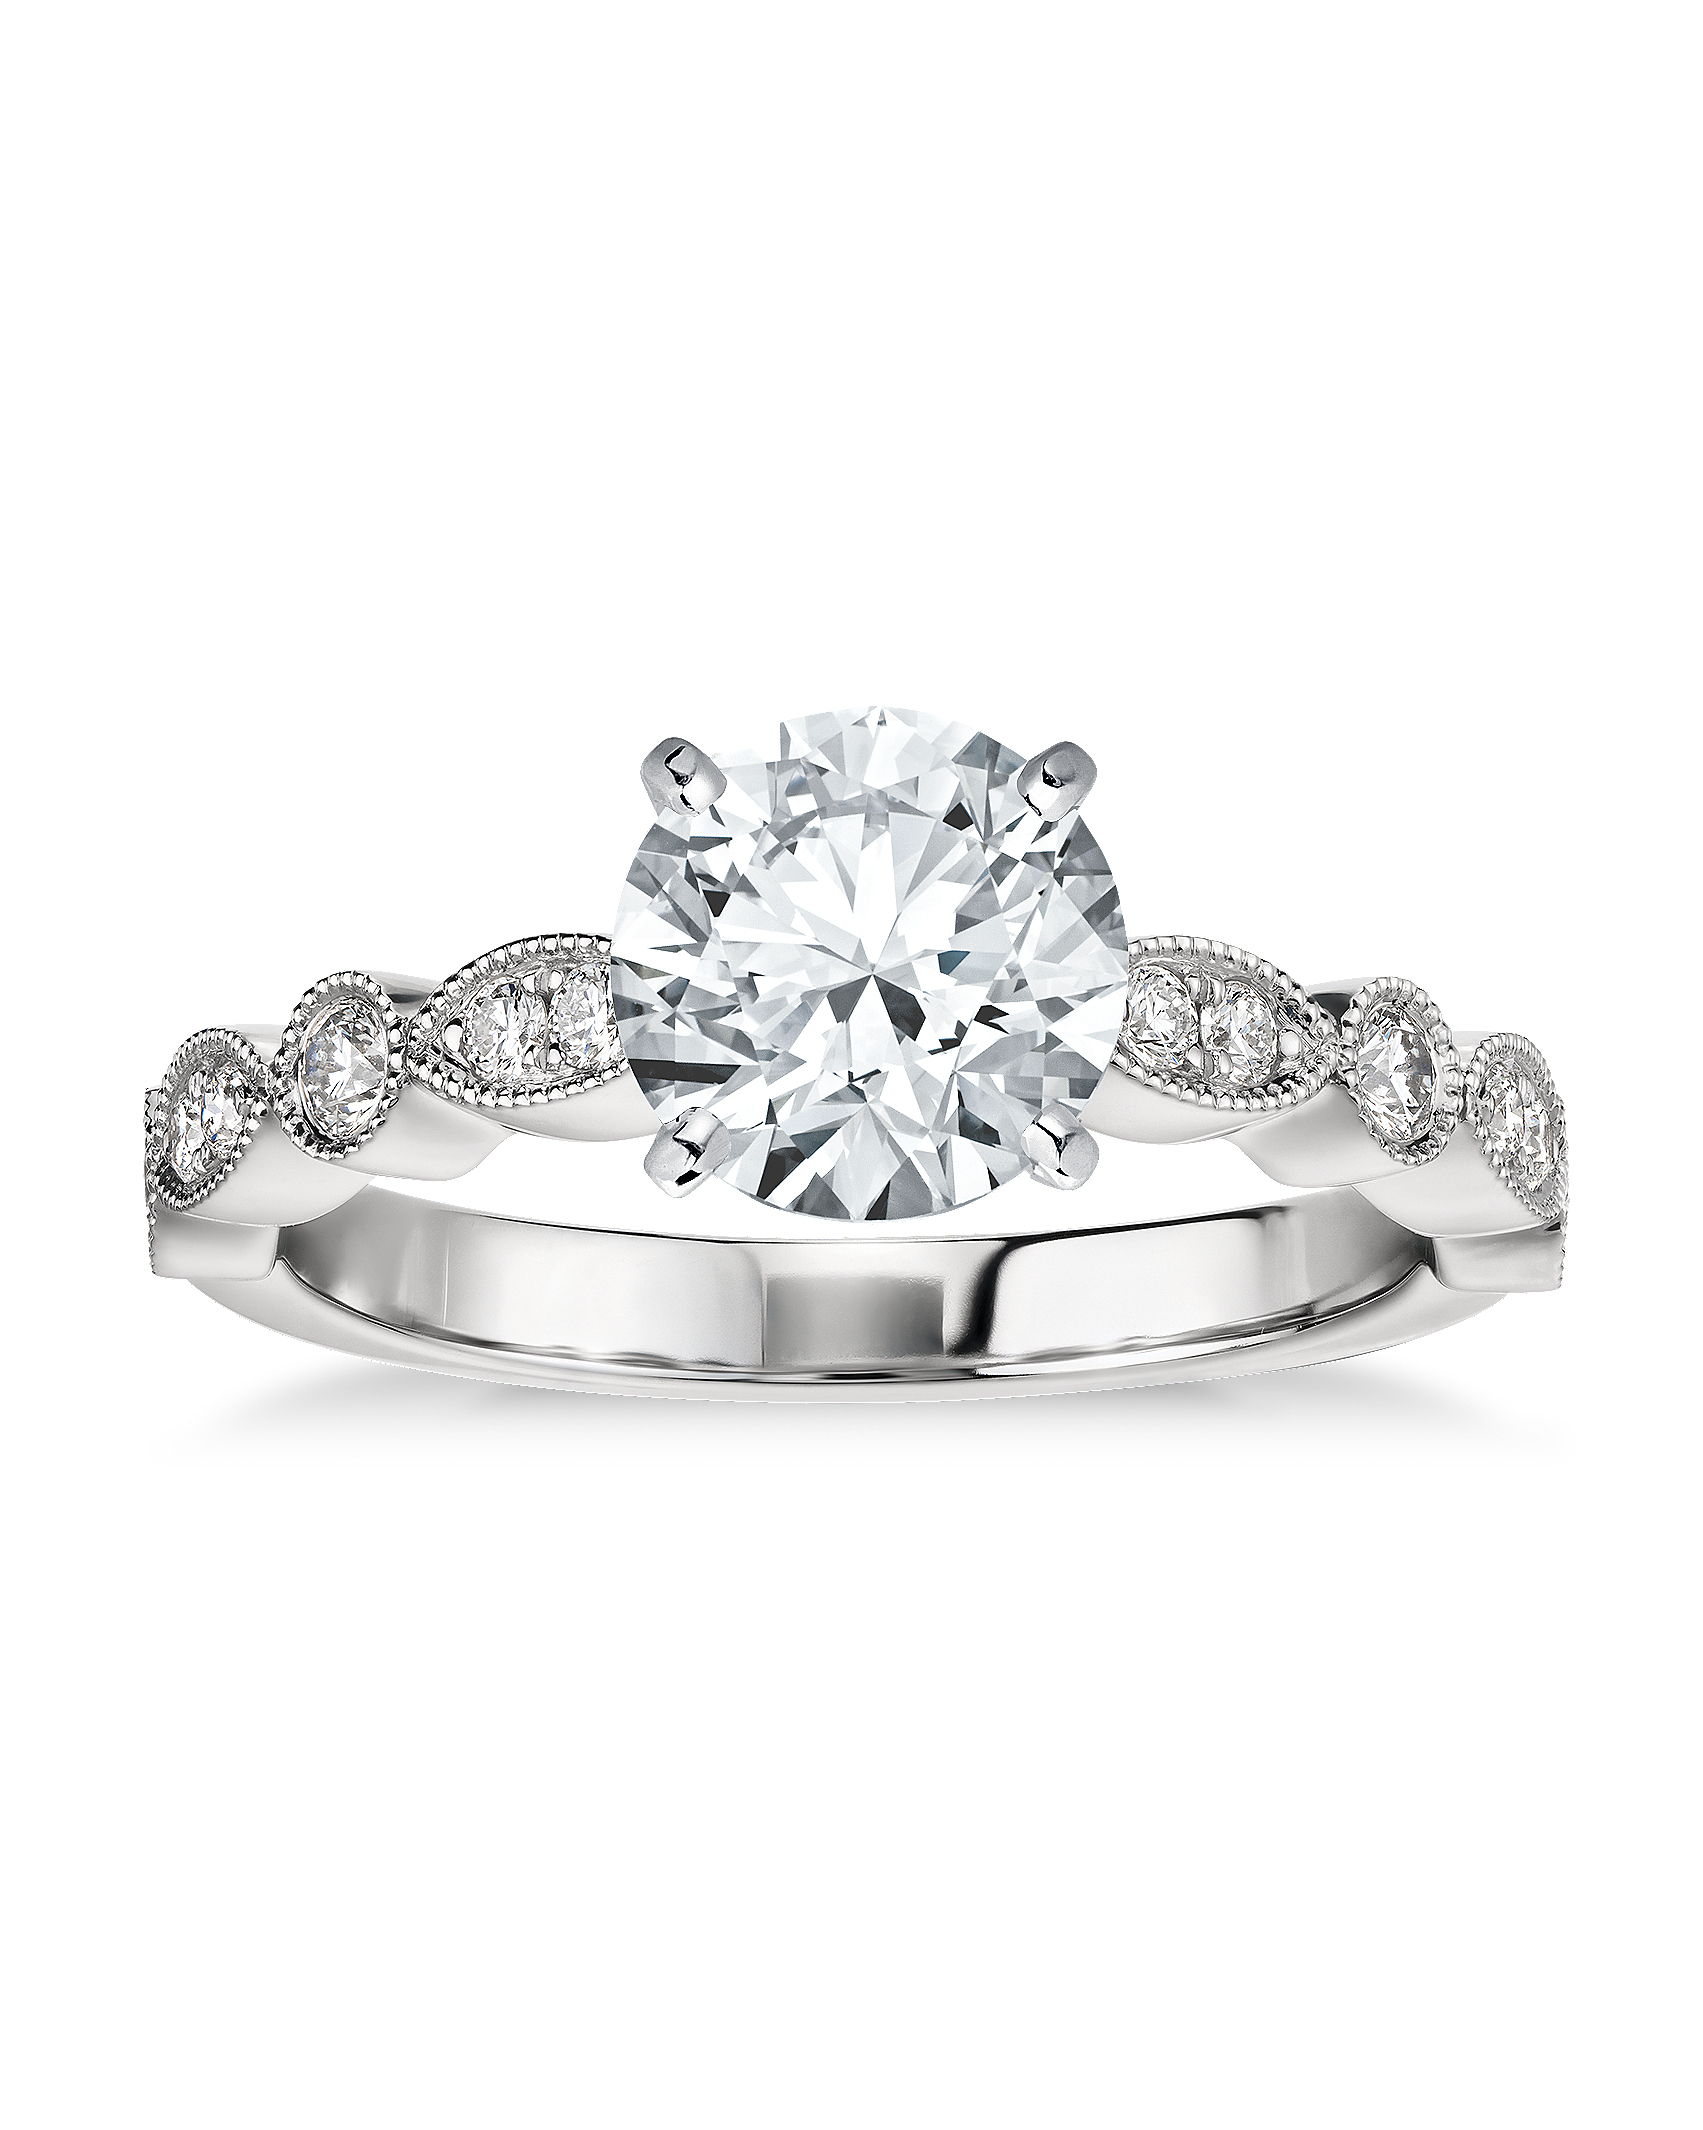 blue-nile-white-gold-marquise-and-dot-engagement-ring-0816.jpg